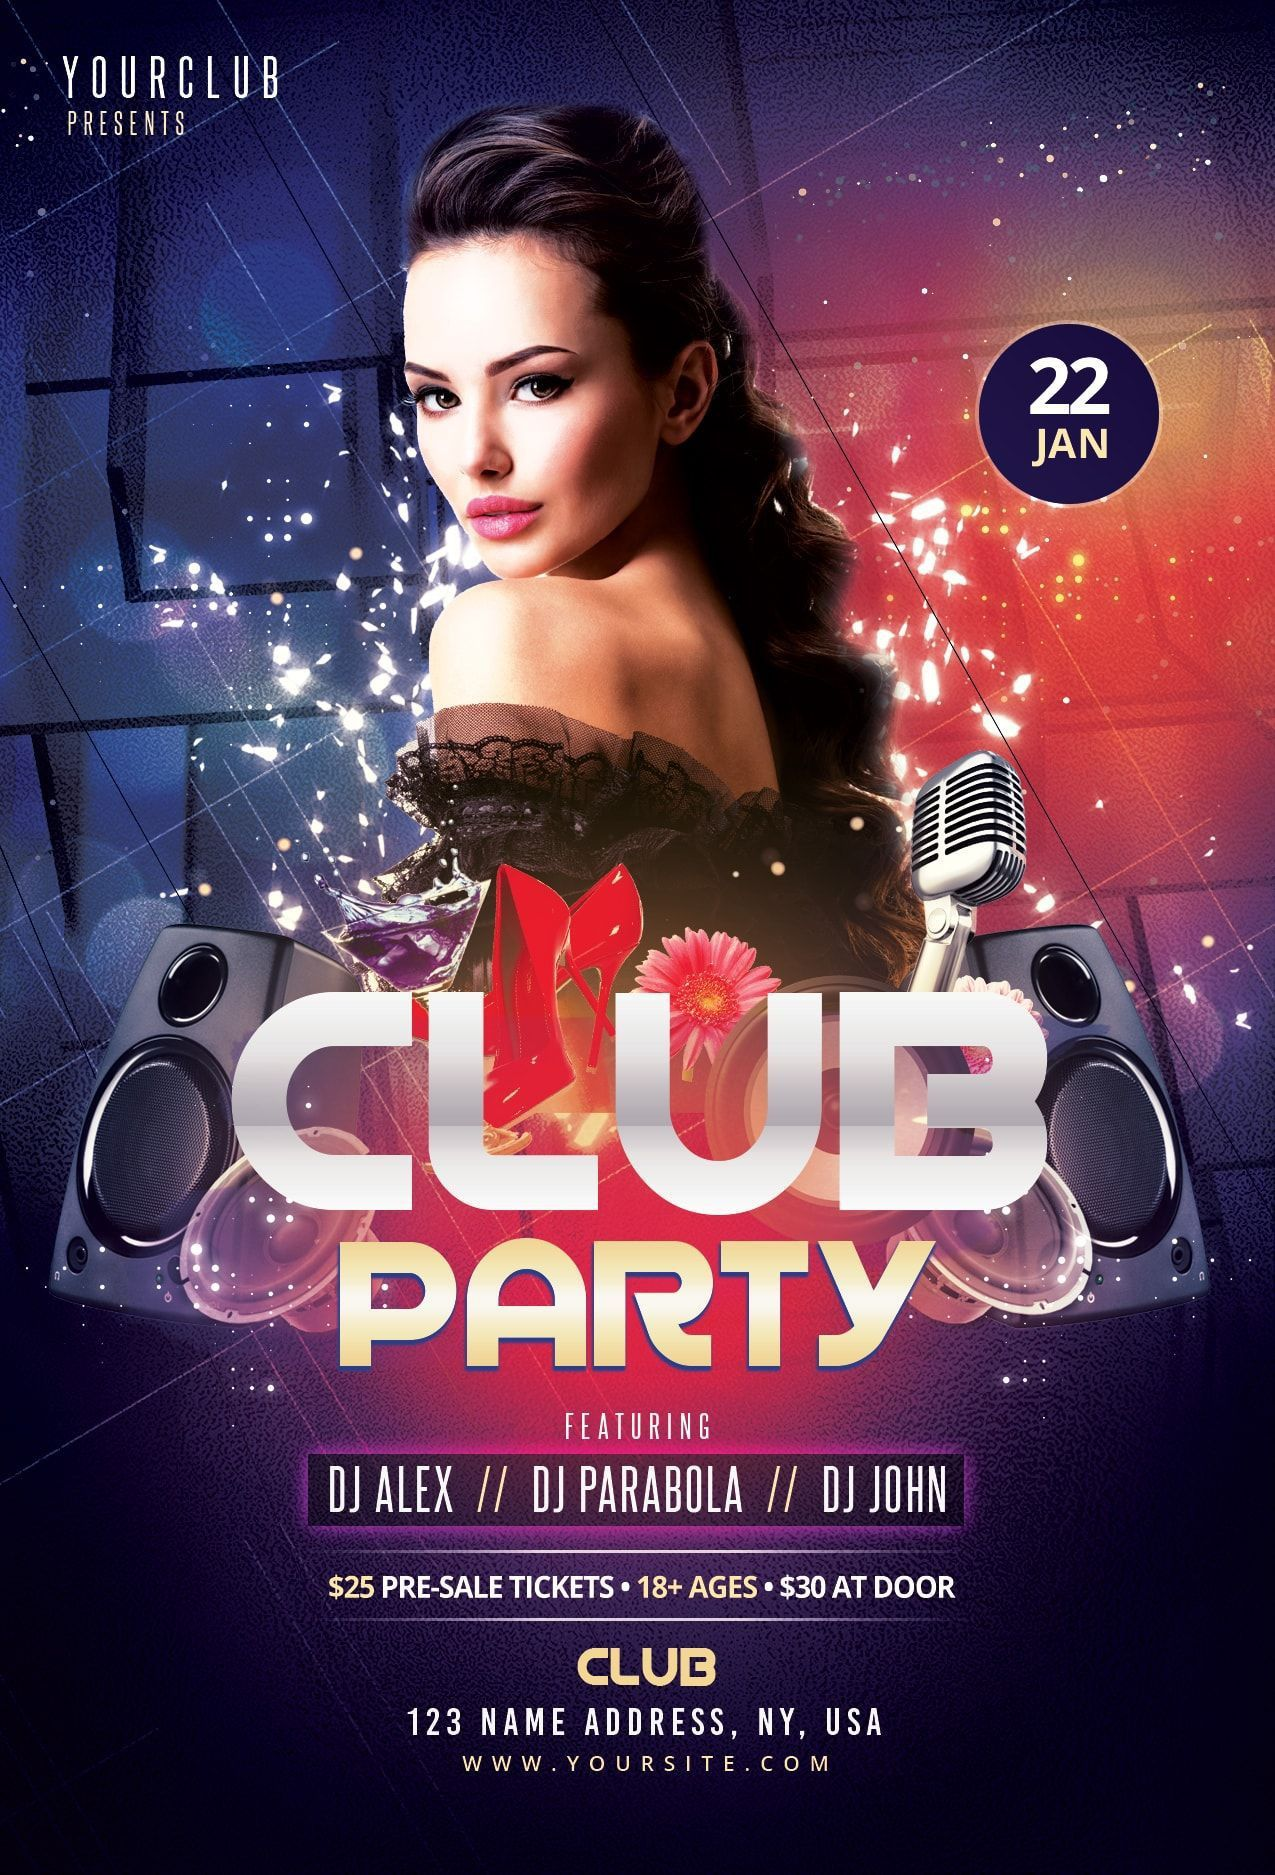 006 Unforgettable Club Party Flyer Template Free Concept Full